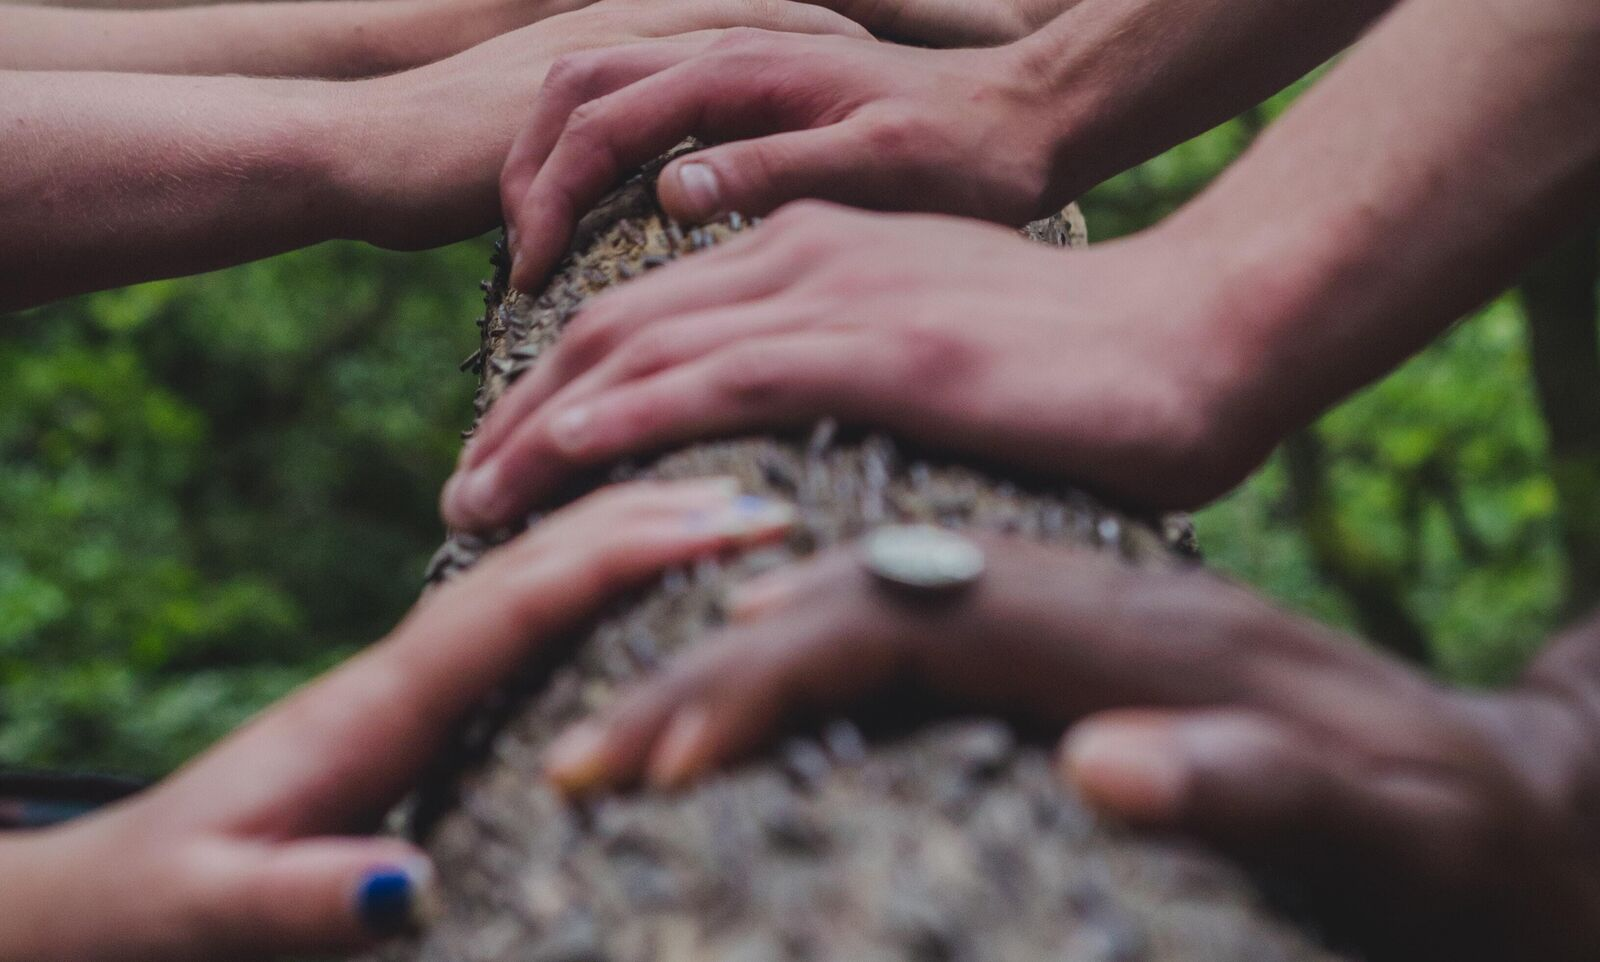 Hands placed on a tree working together